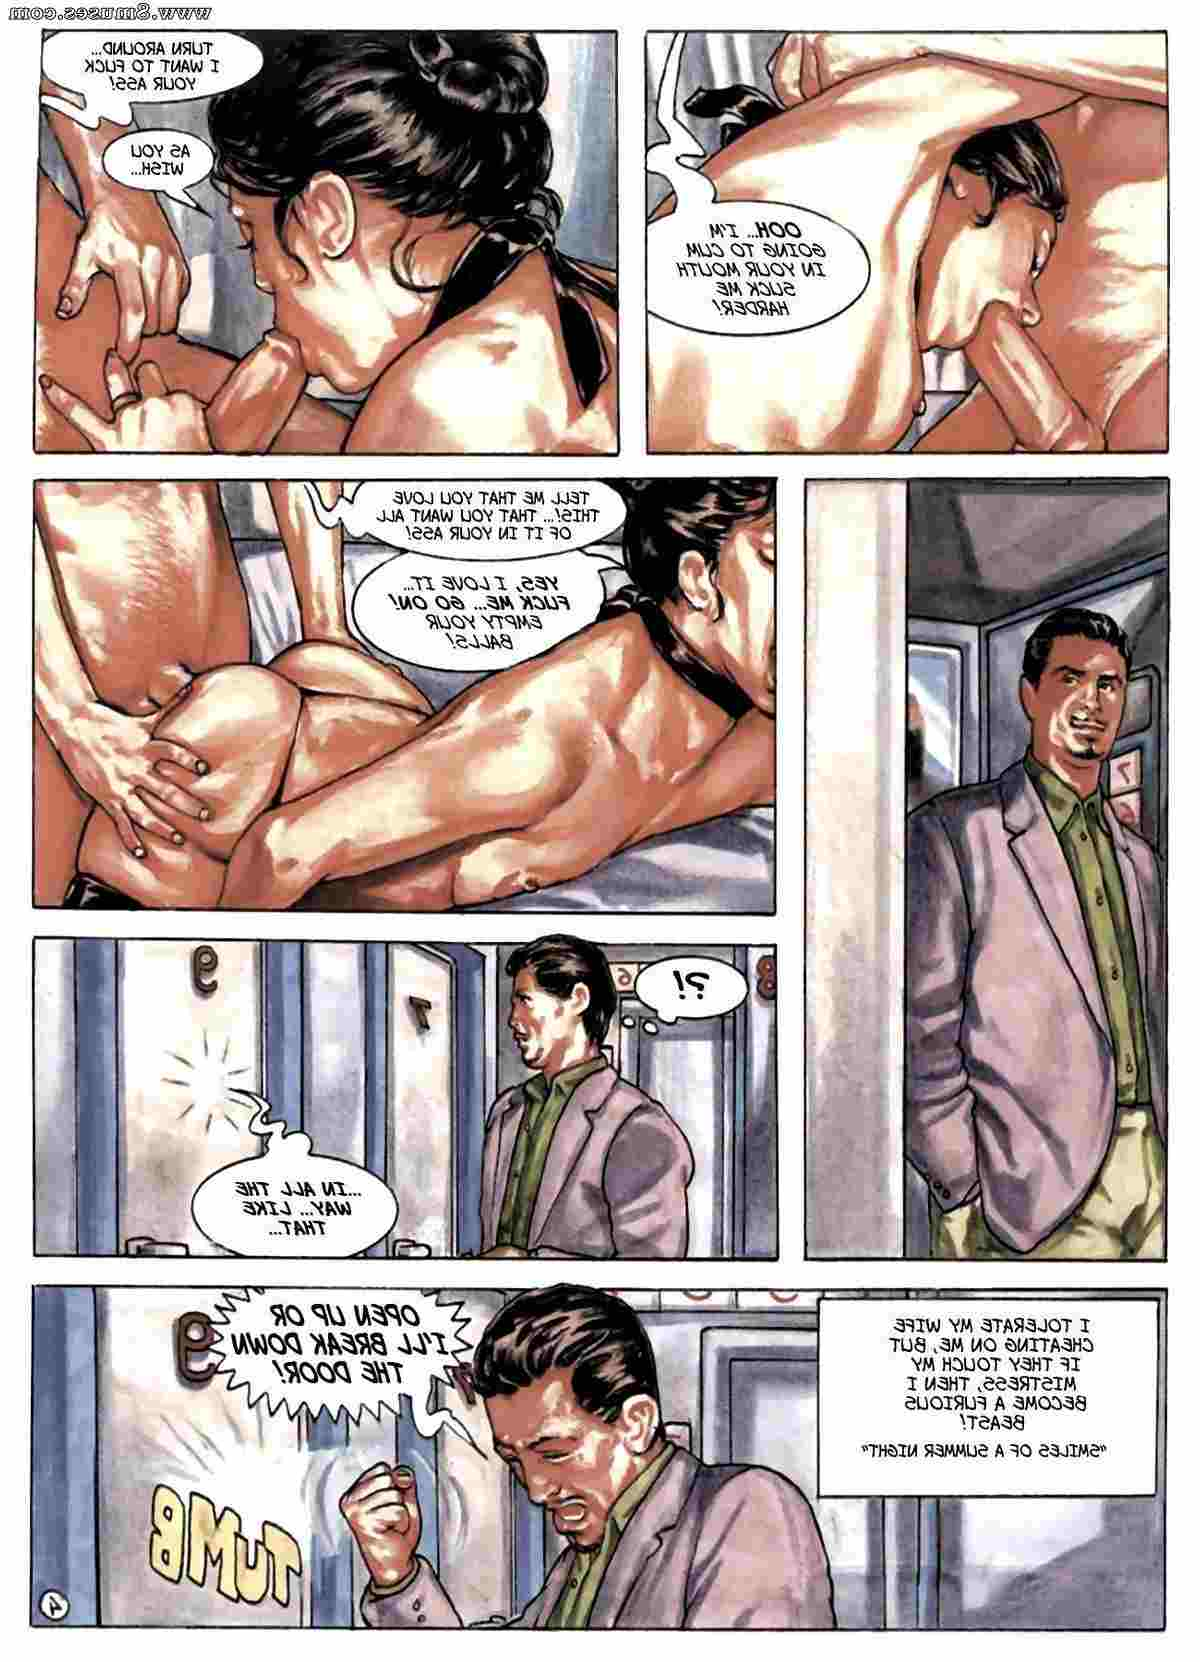 Selen-Comics/Beloved-Submission Beloved_Submission__8muses_-_Sex_and_Porn_Comics_15.jpg